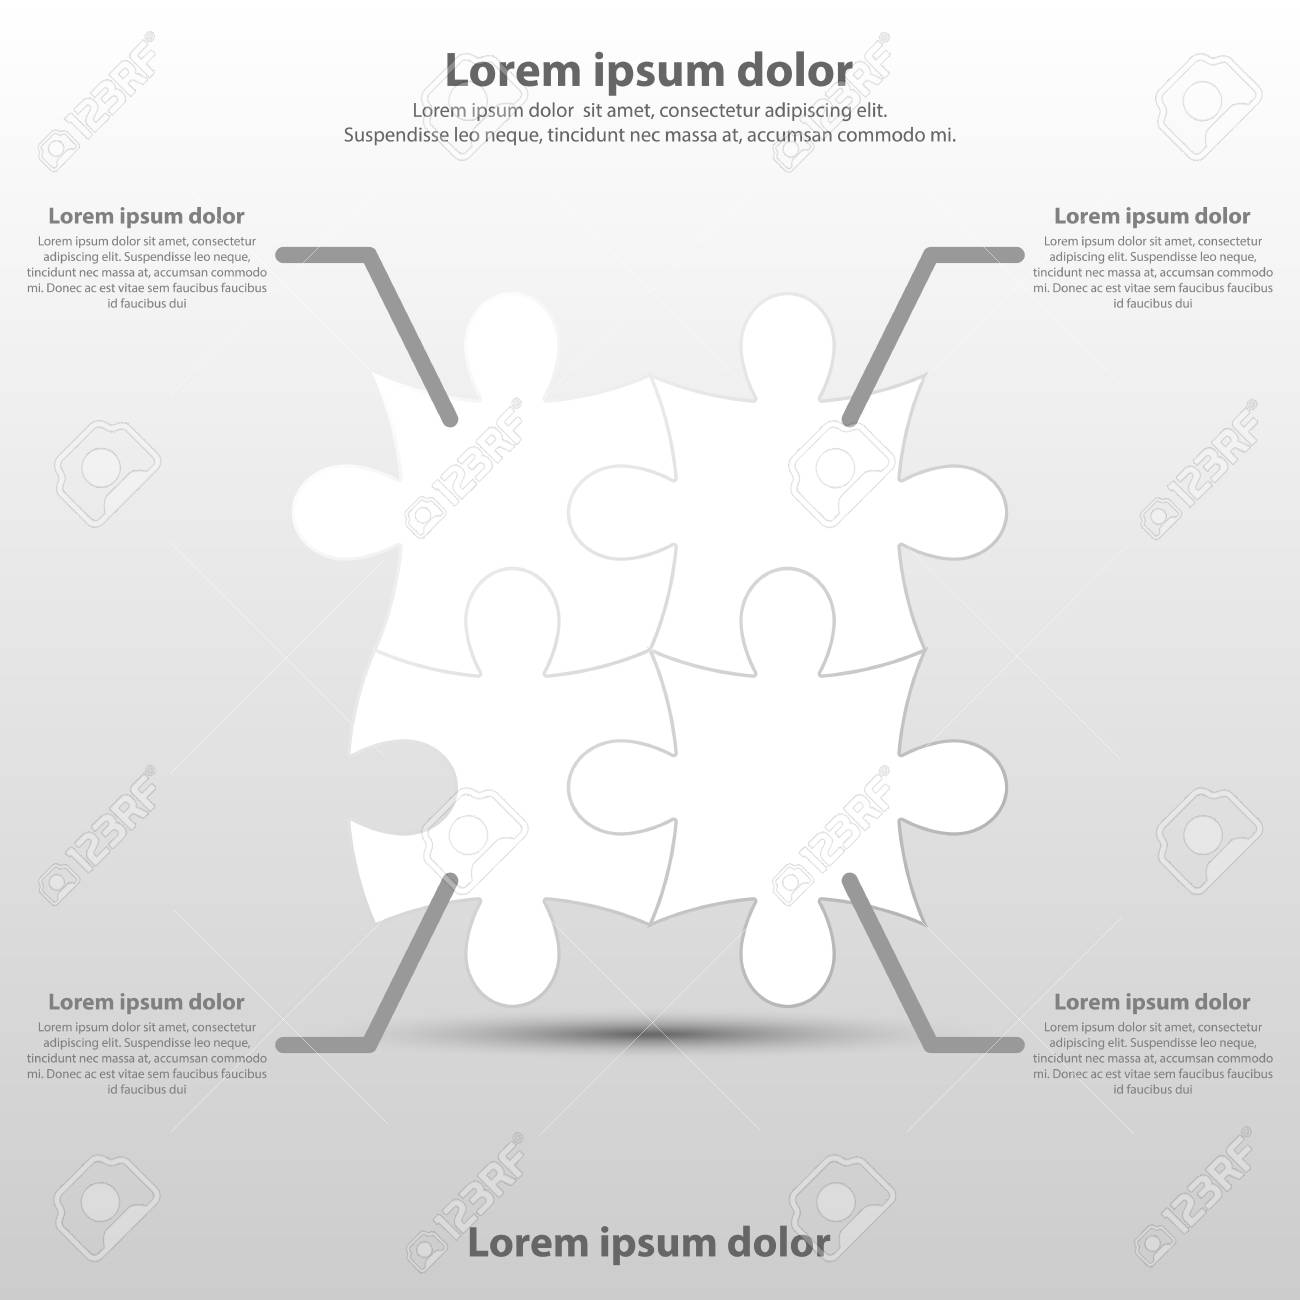 Four topics simple white paper 3d square on timeline for website.